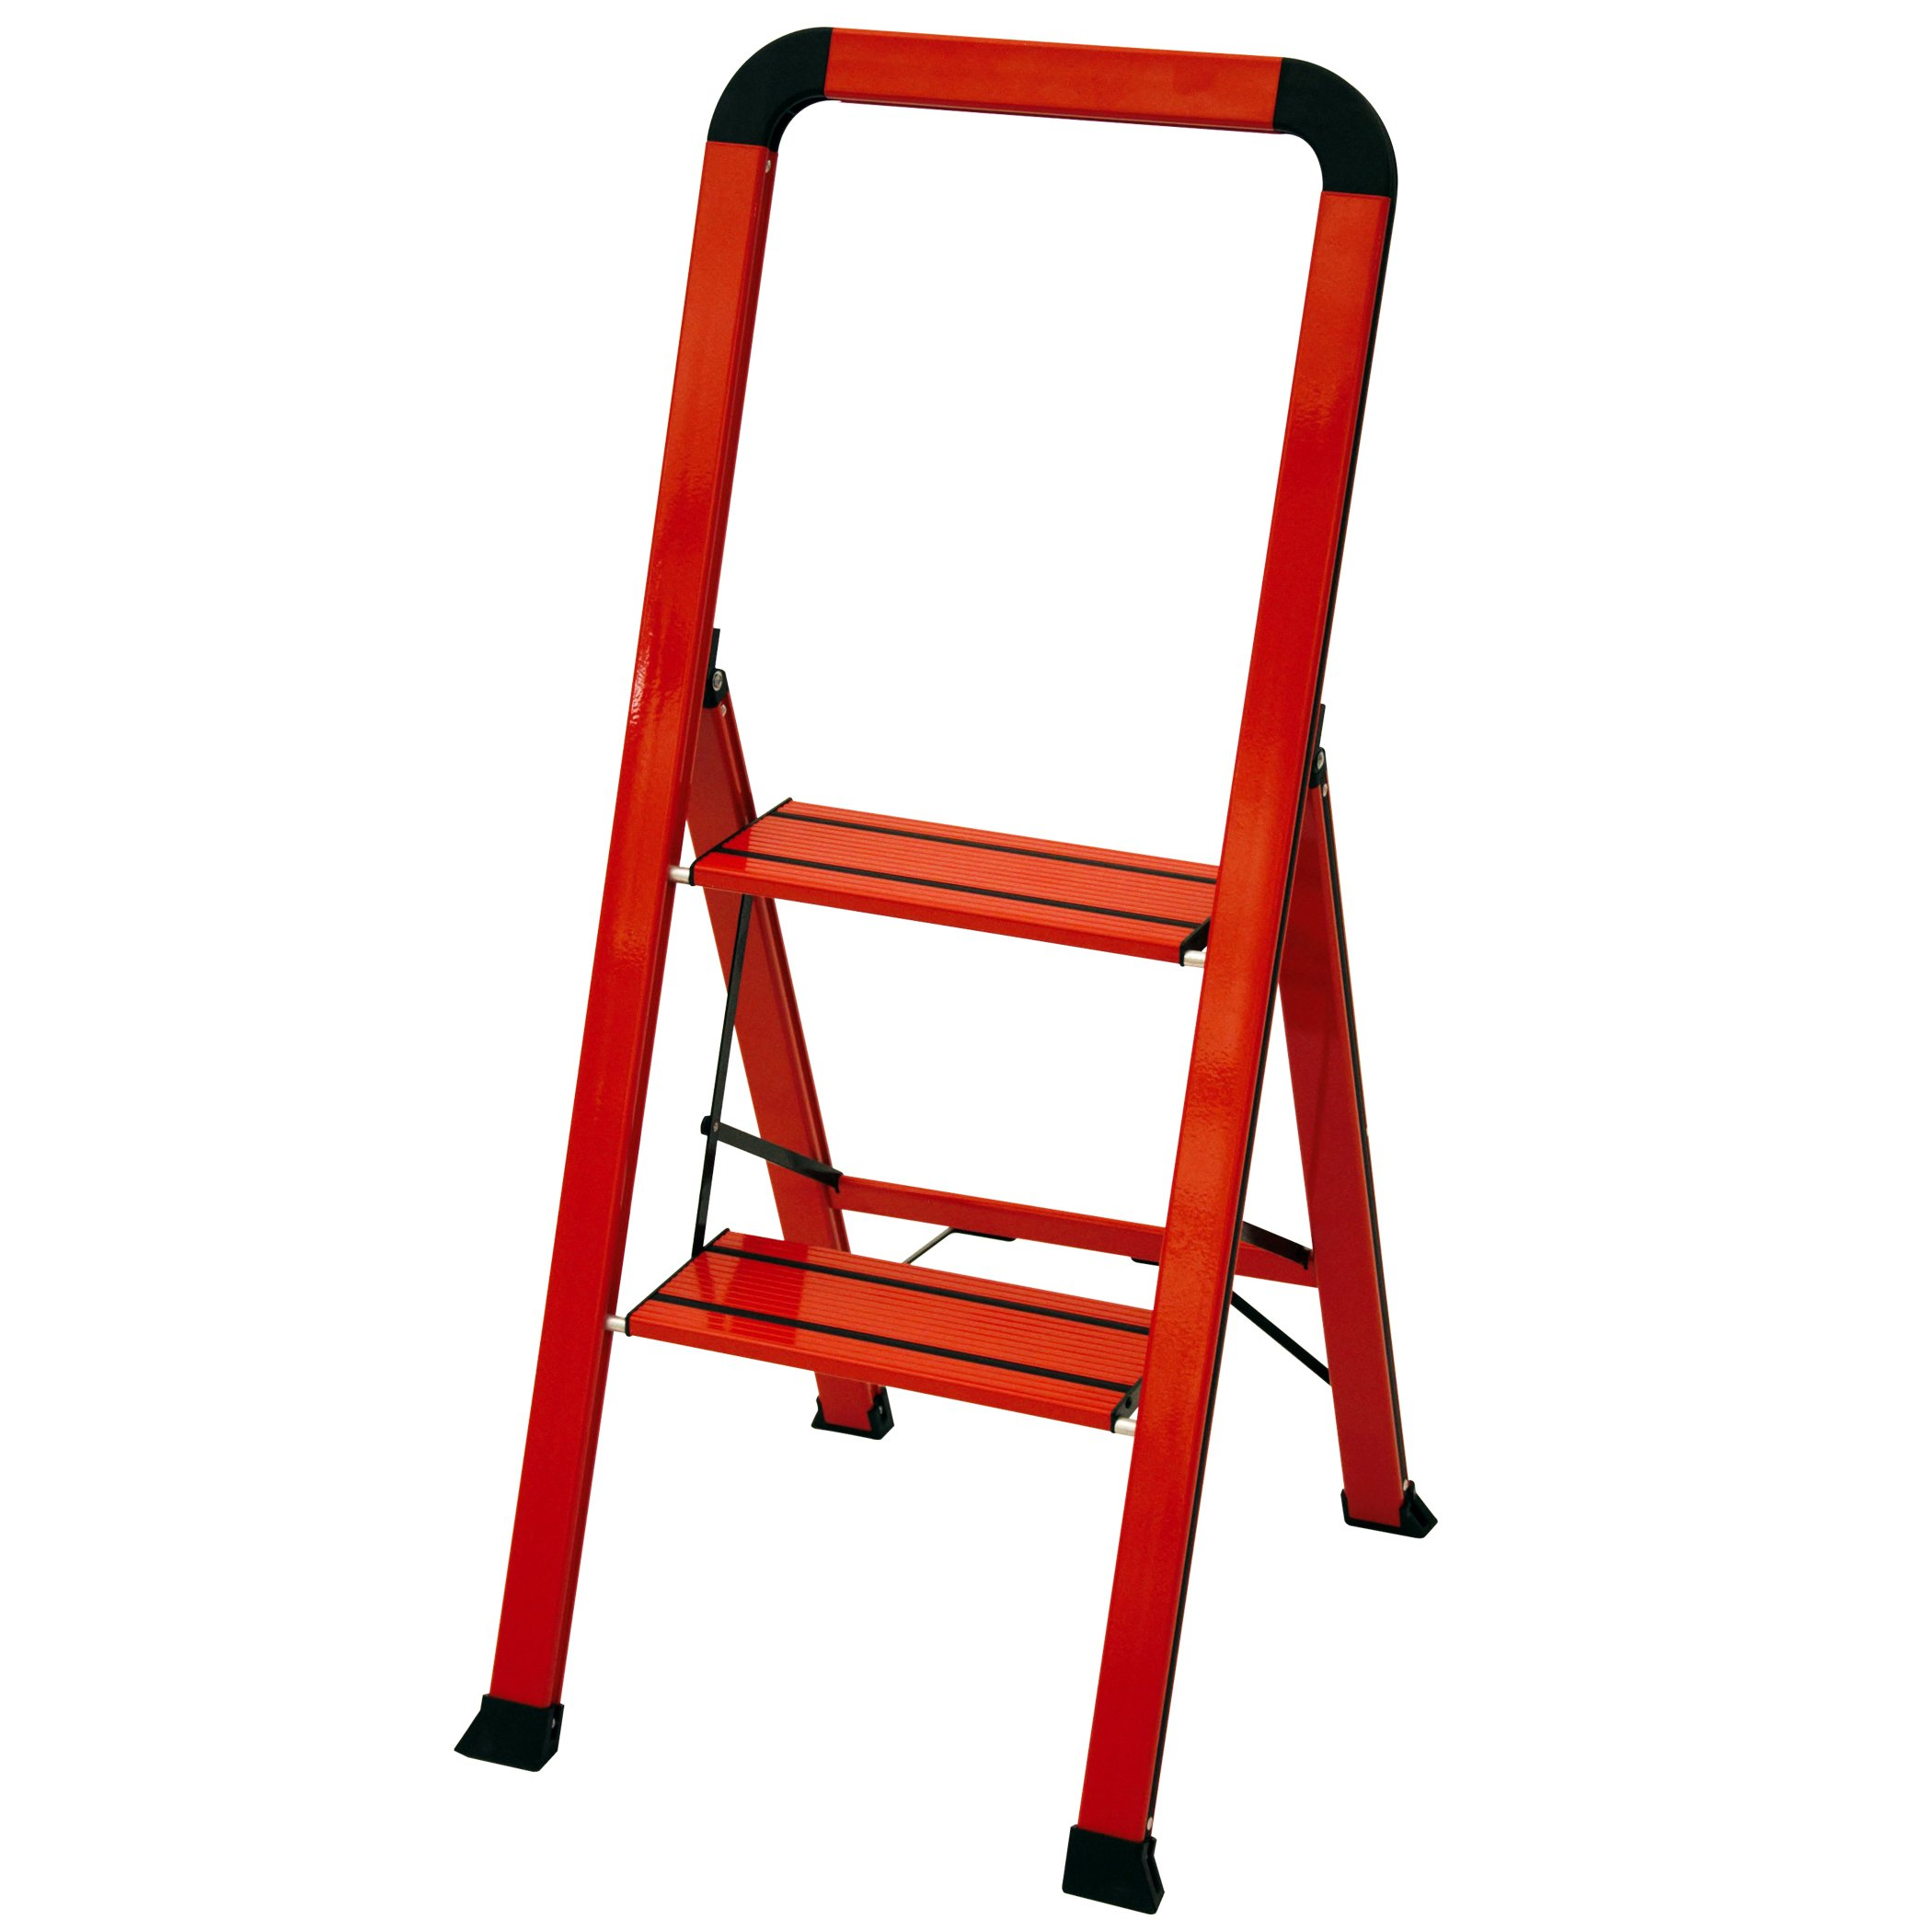 Ascent ADS2-001-RD Series Aluminum 2 Designer Step Stool, Red by Ascent